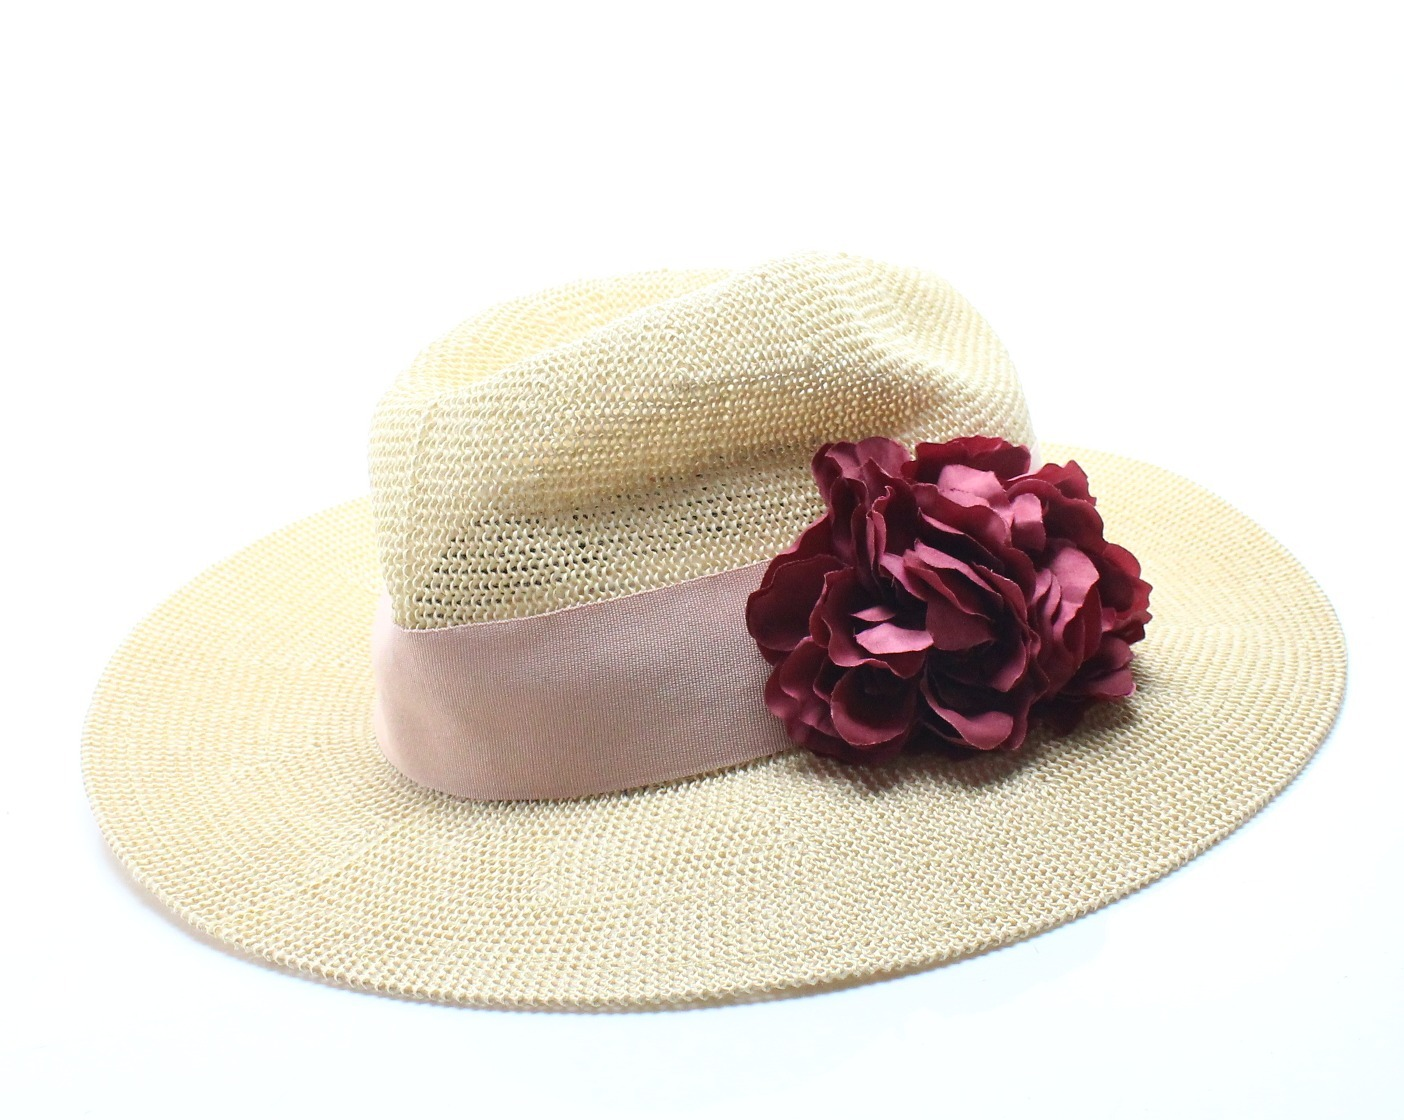 Details about Vince Camuto NEW Beige Natural Red Floral Accent Adjustable Fedora  Hat  32 090 5f530888313